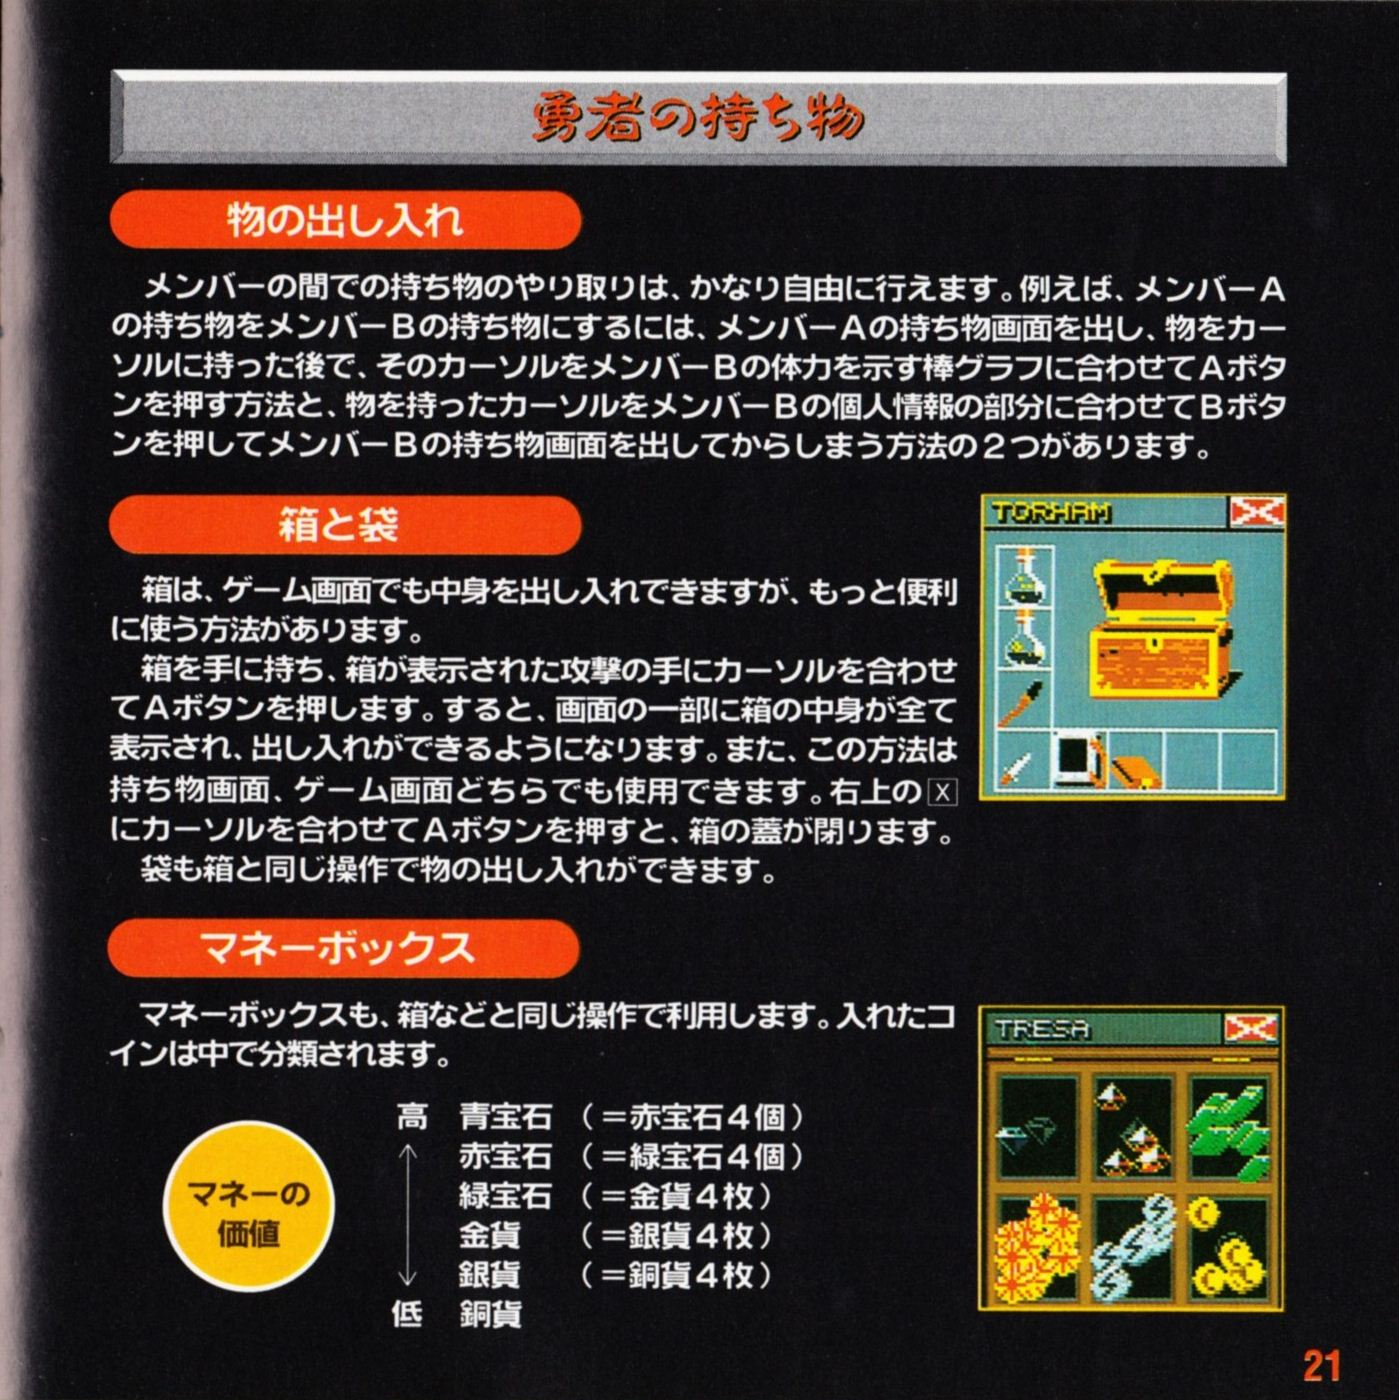 Game - Dungeon Master II - JP - Mega CD - Booklet - Page 023 - Scan